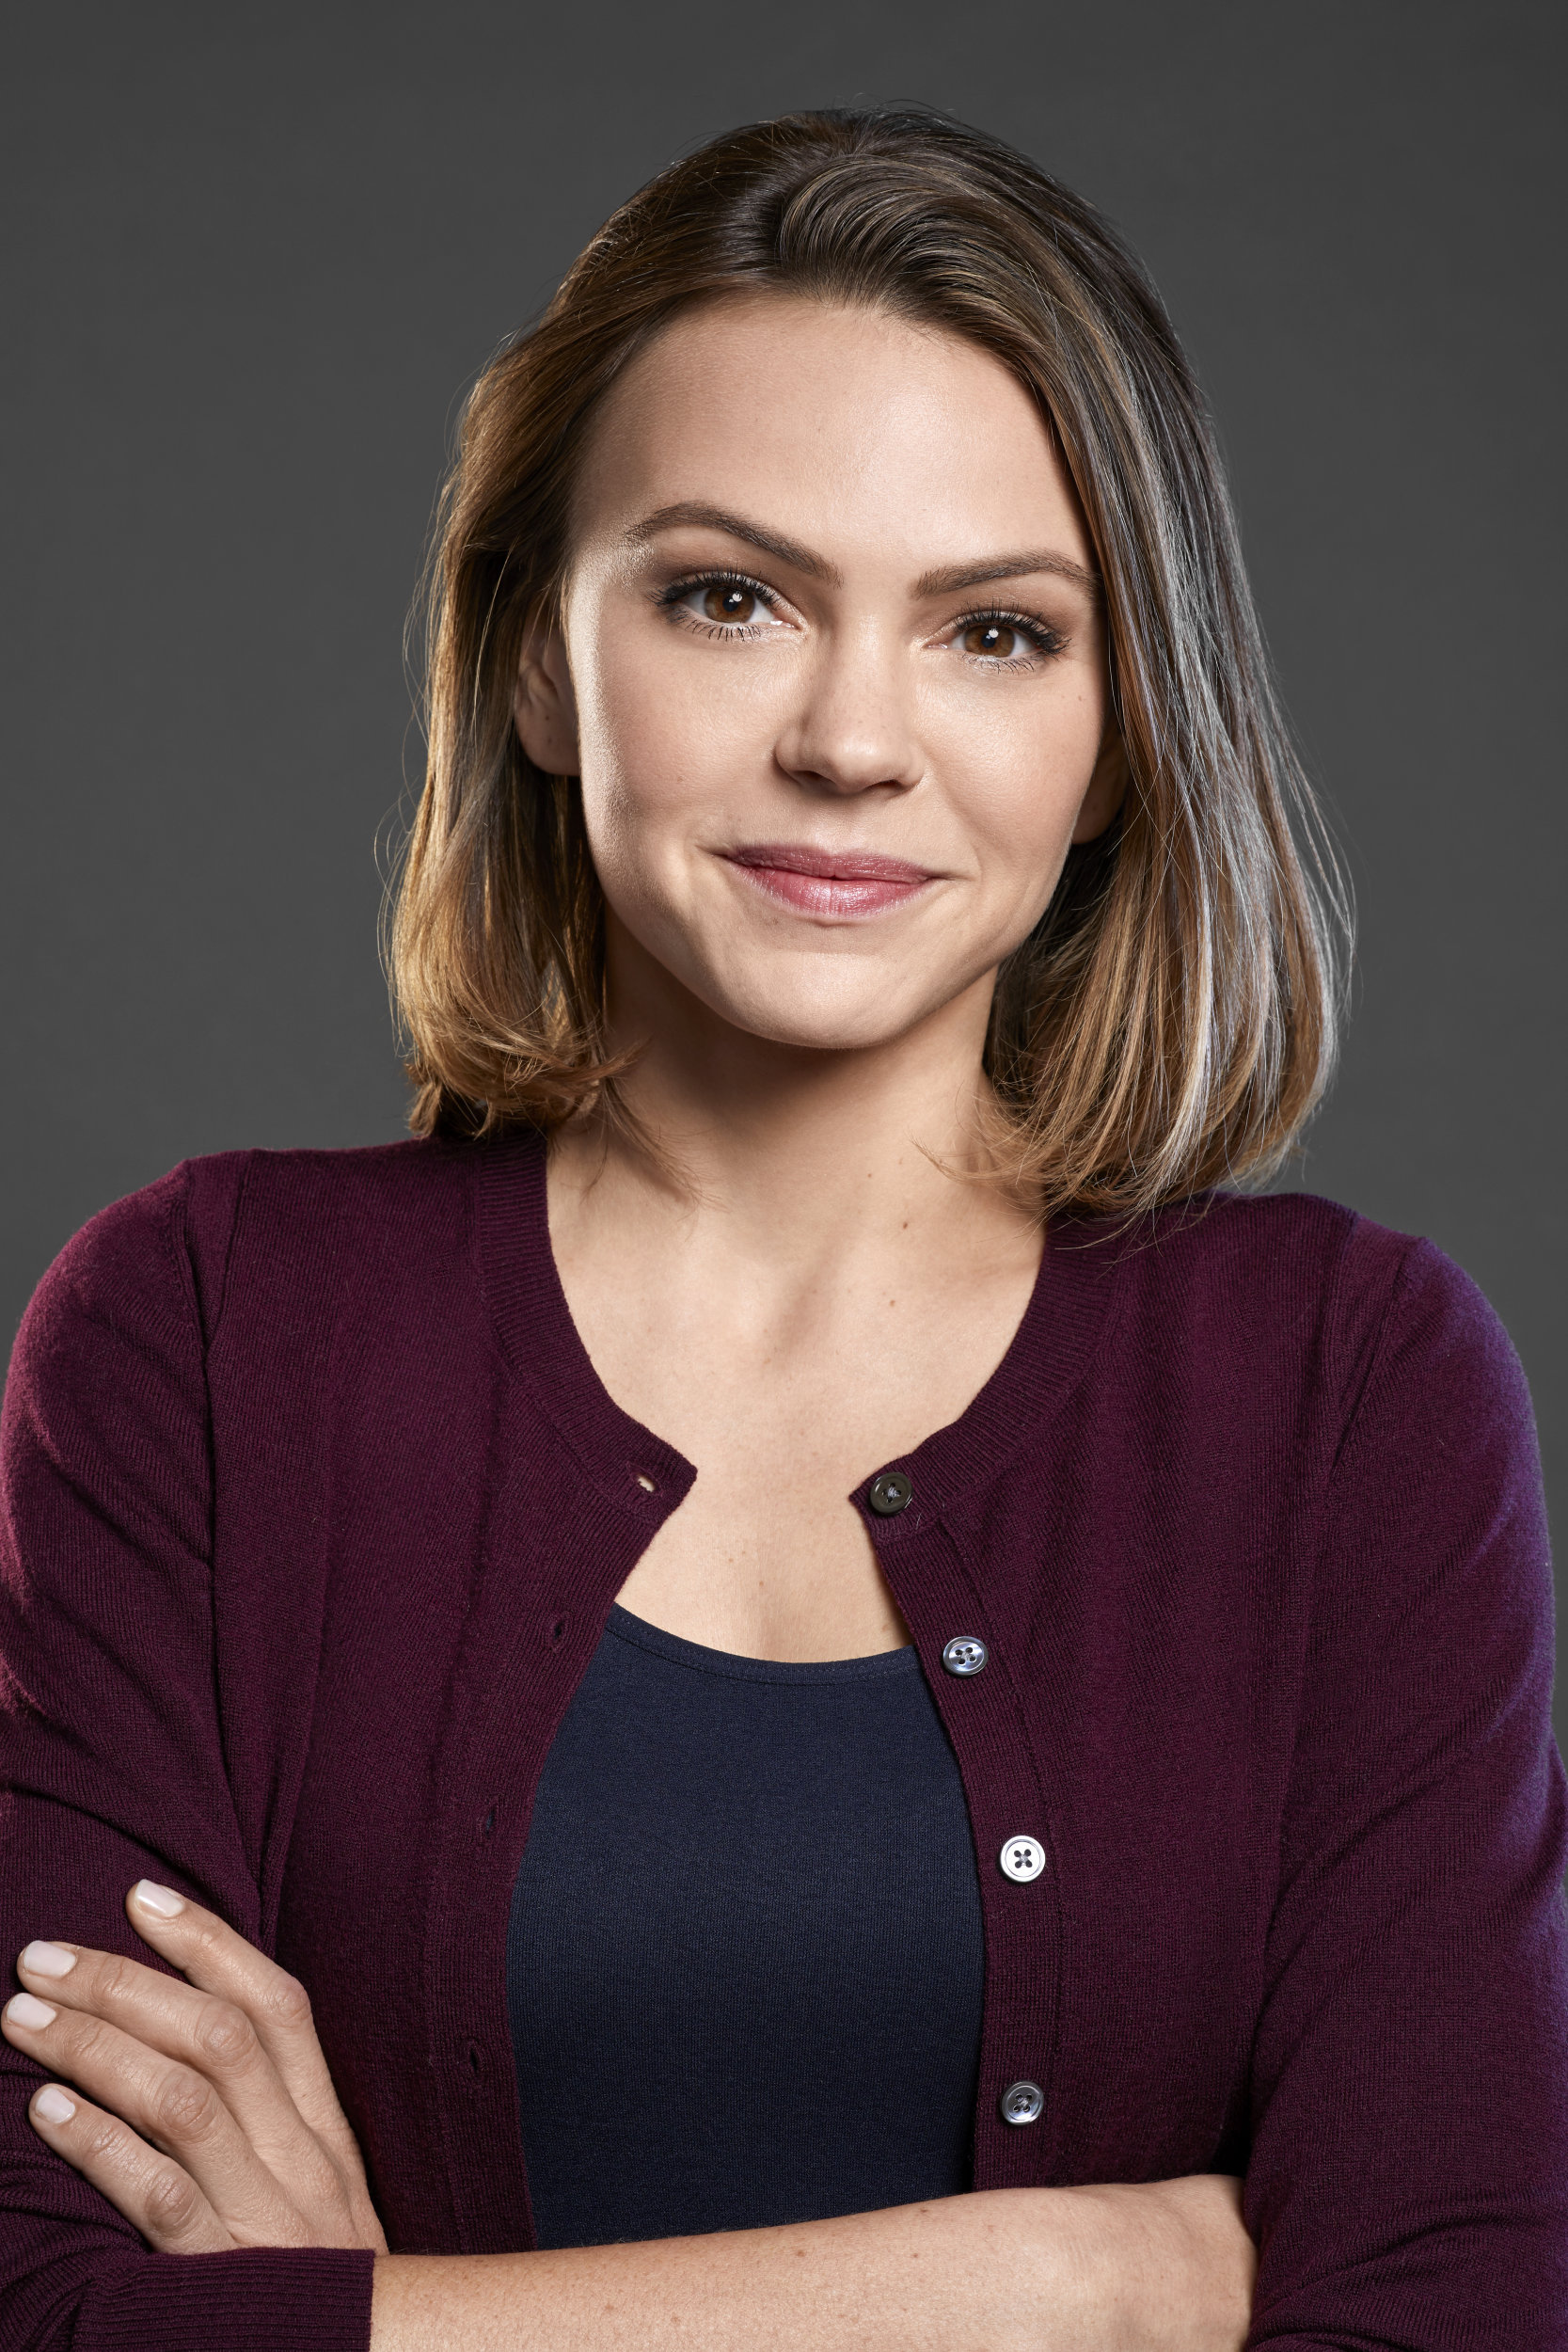 Once Upon A Christmas Miracle 2020 Cast Aimee Teegarden as Heather Krueger on Once Upon a Christmas